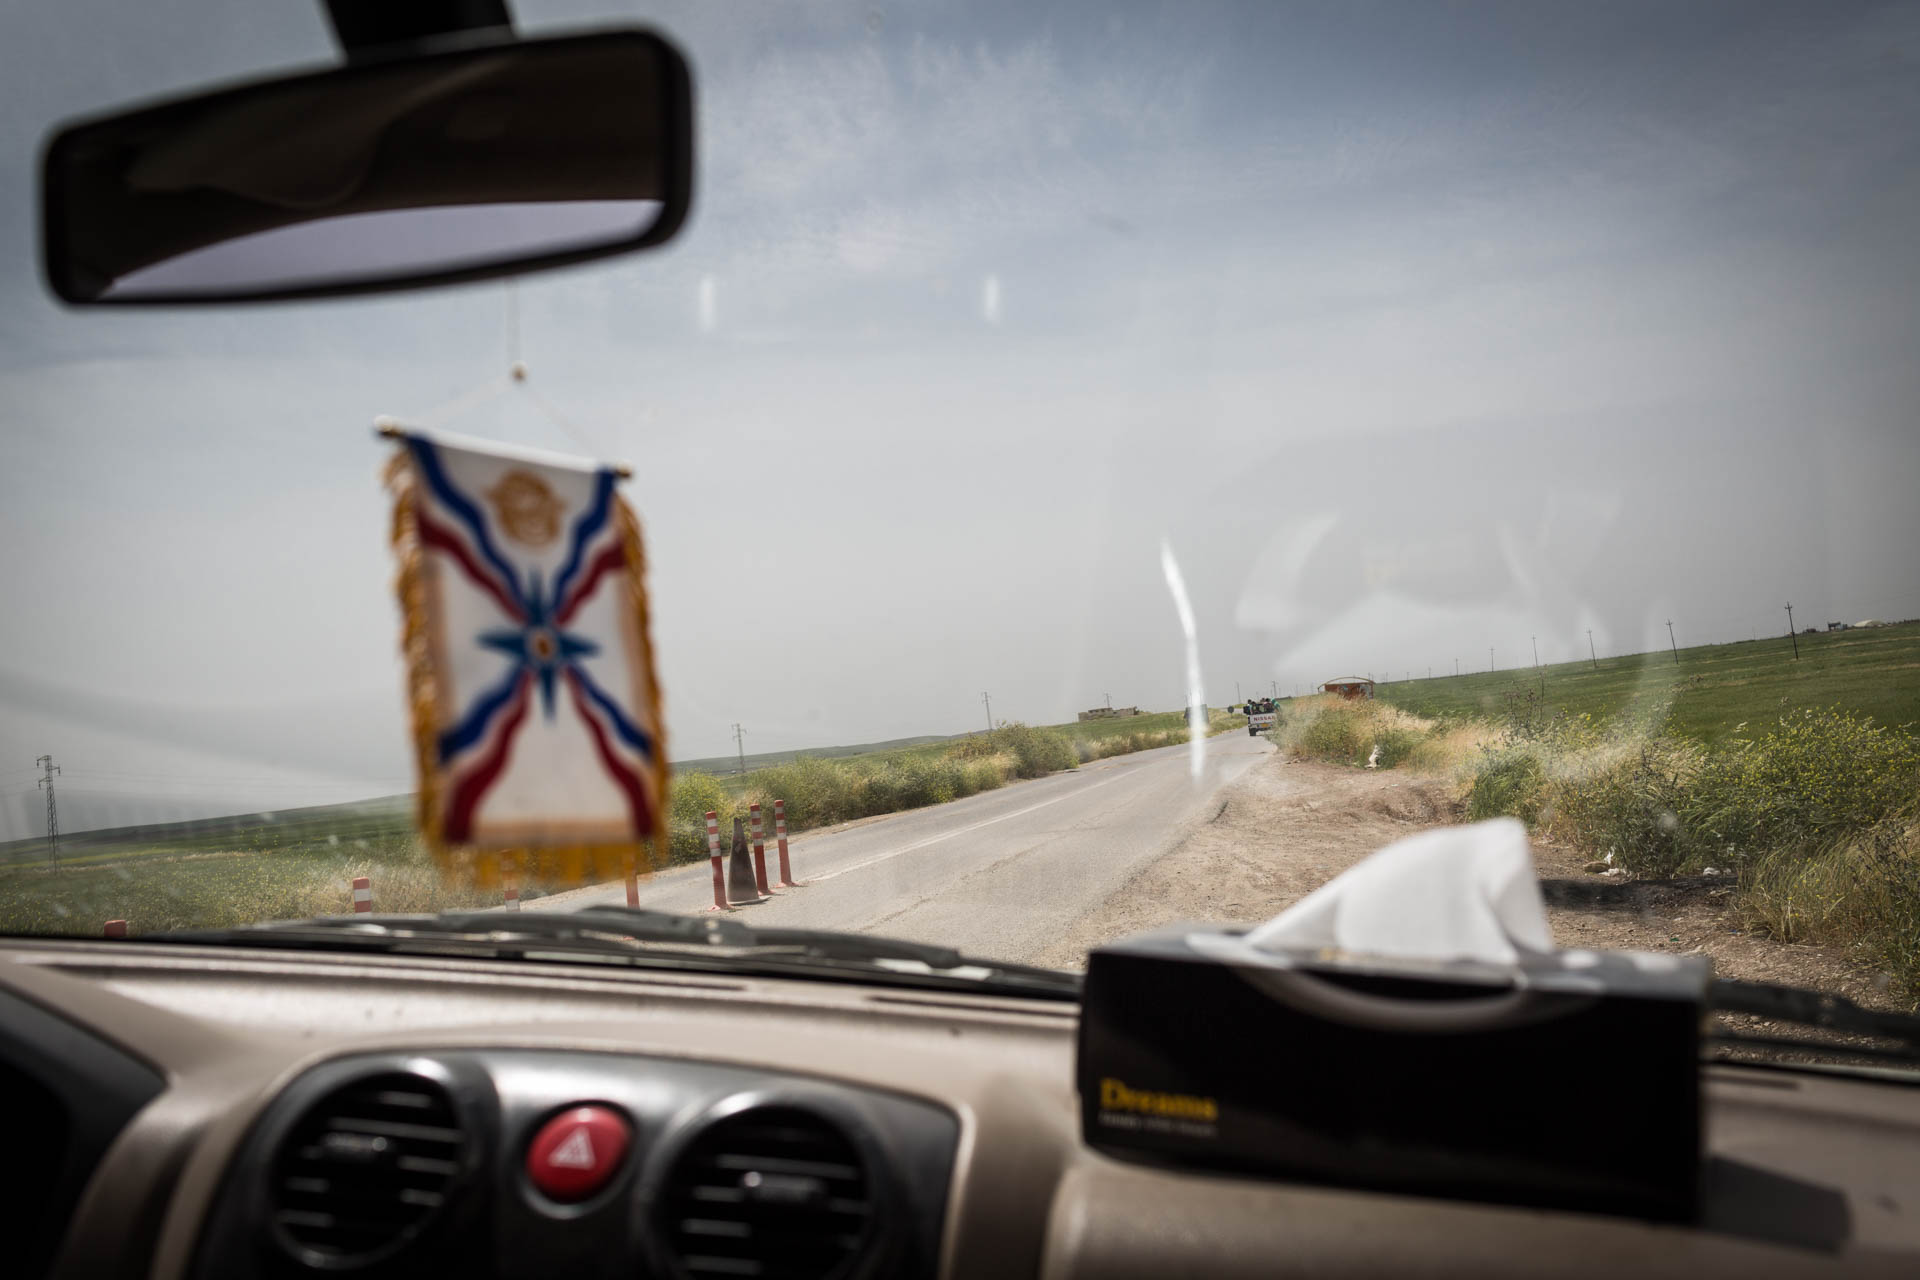 The road to the village Bakufa. The last checkpoint on this road is in control of the Peshmerga, and the Dwekh Nawsha calls them their allies.